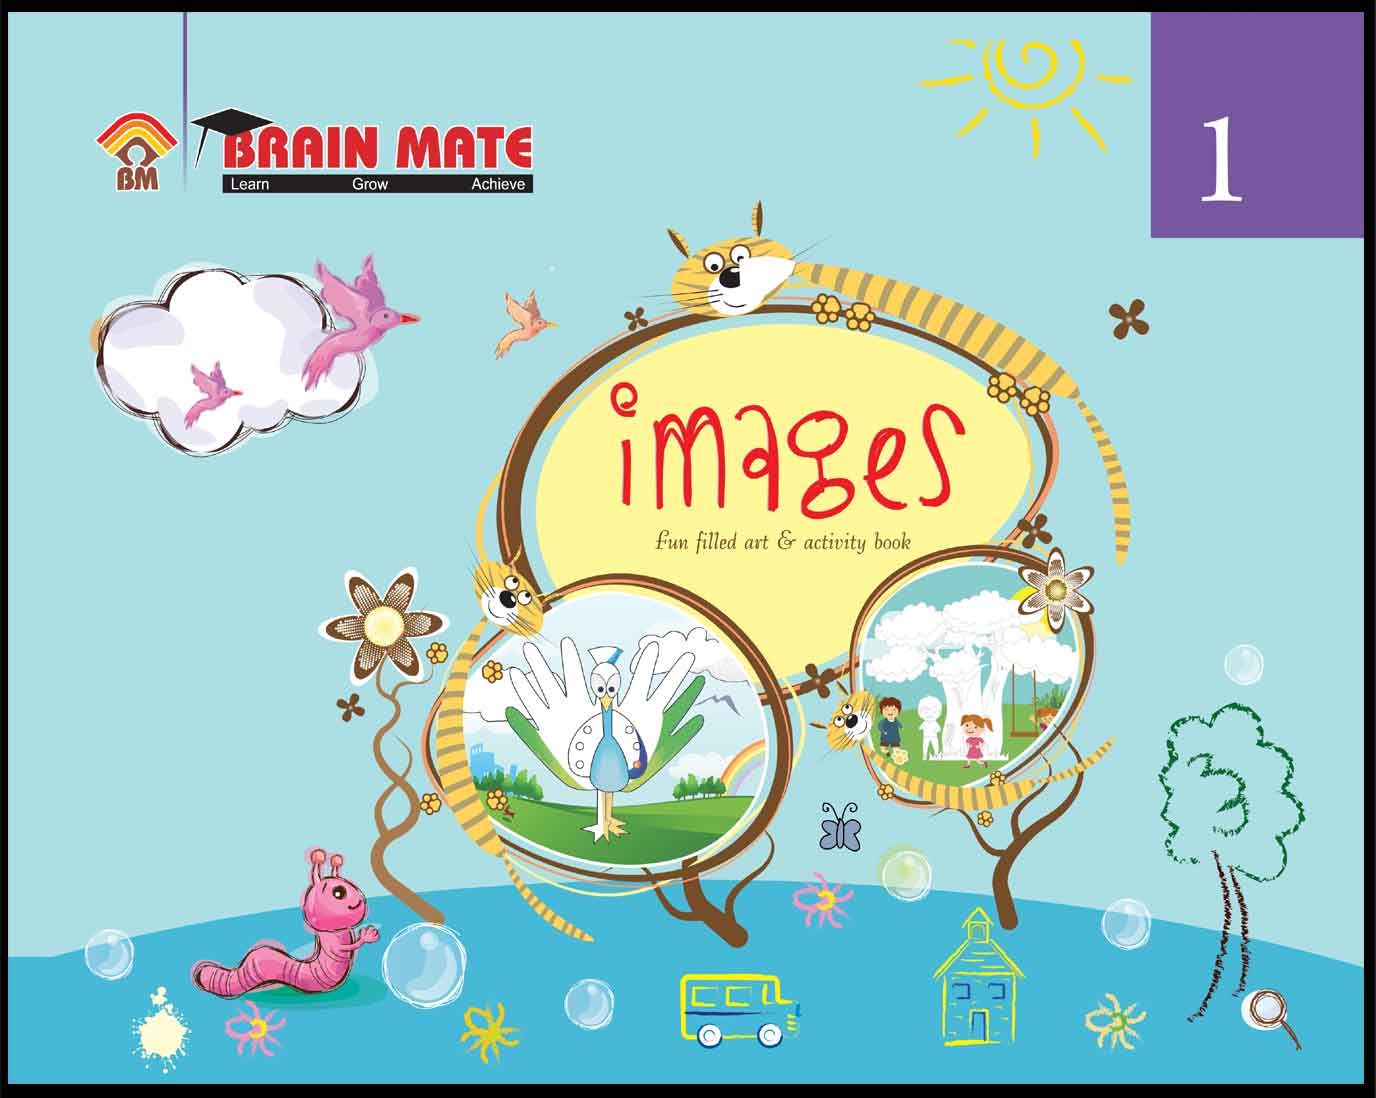 brainmate of Images_1